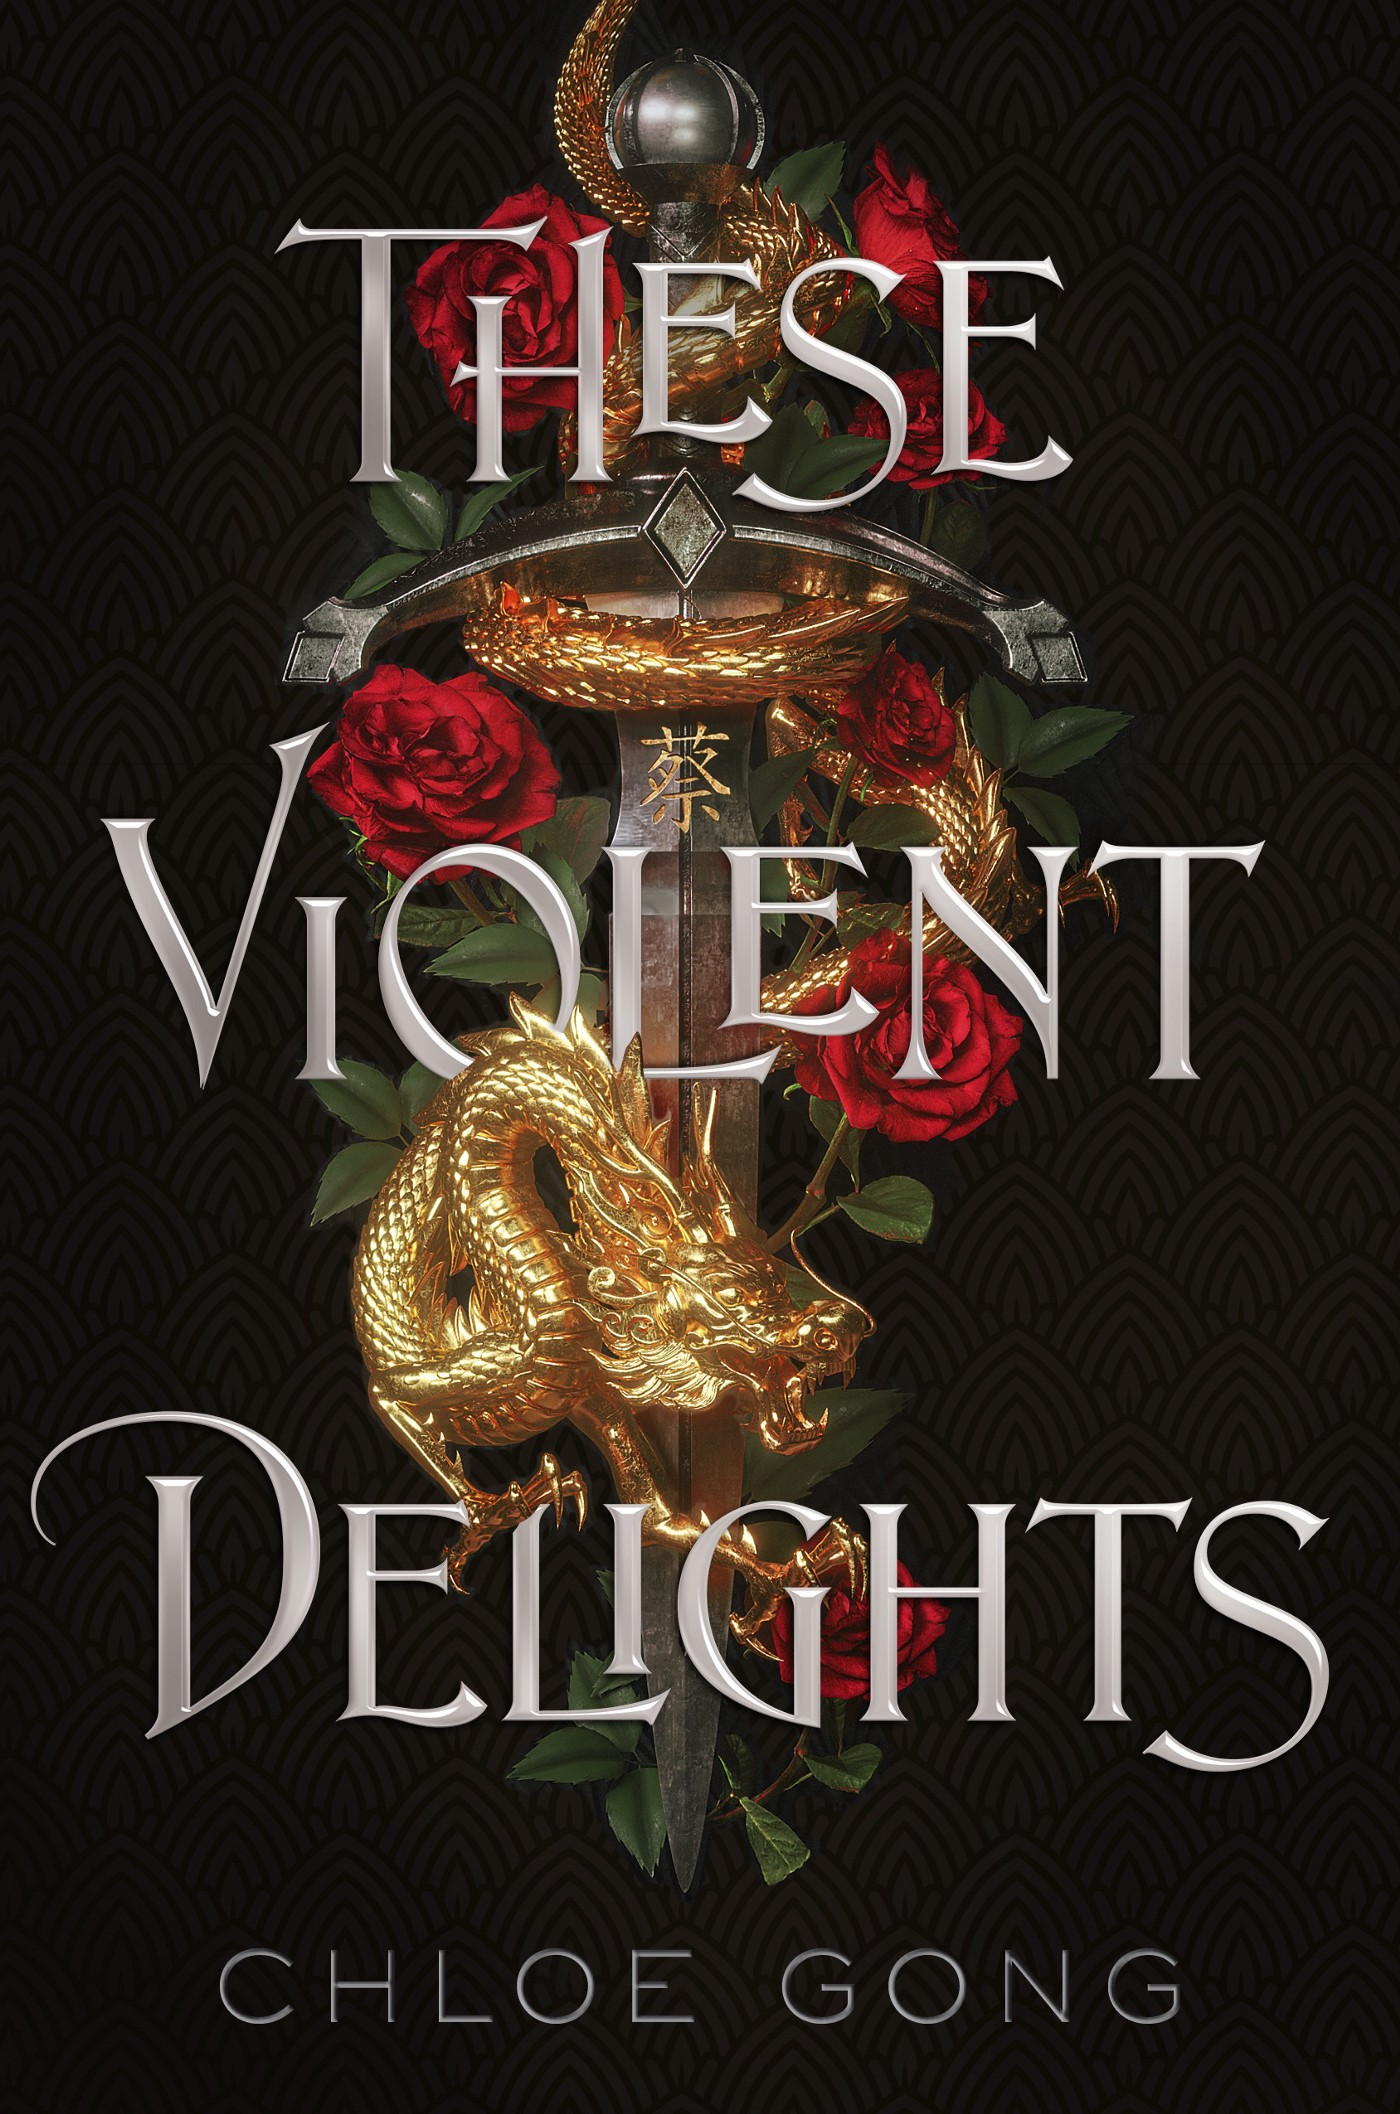 These Violent Delights written by Chloe Gong and a review by Shuana Yap